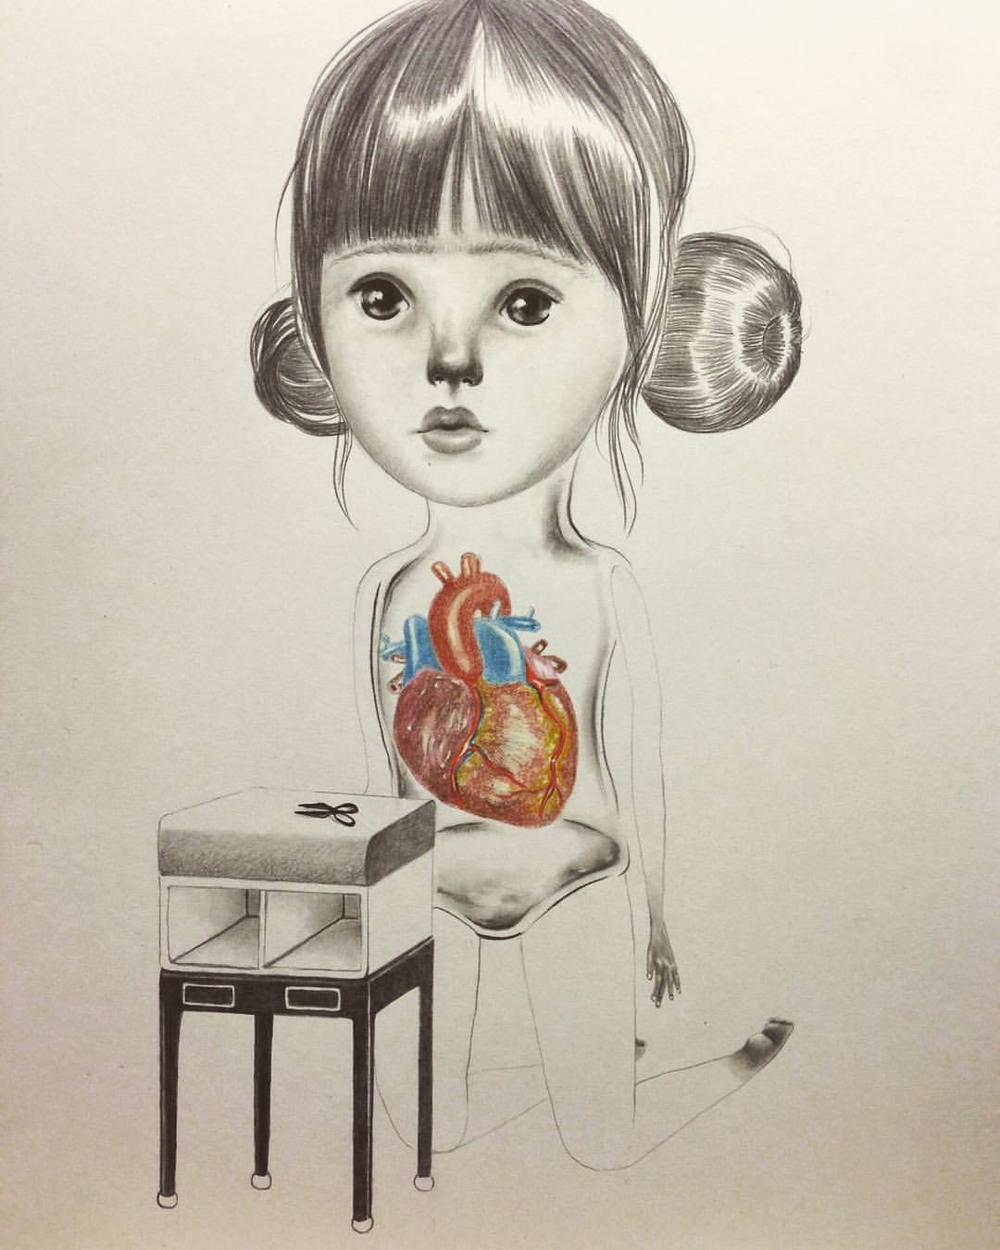 A sketch I did at the beginning of this year, really capturing my mood lately #wbw #lolagil ❤️ #trueheart